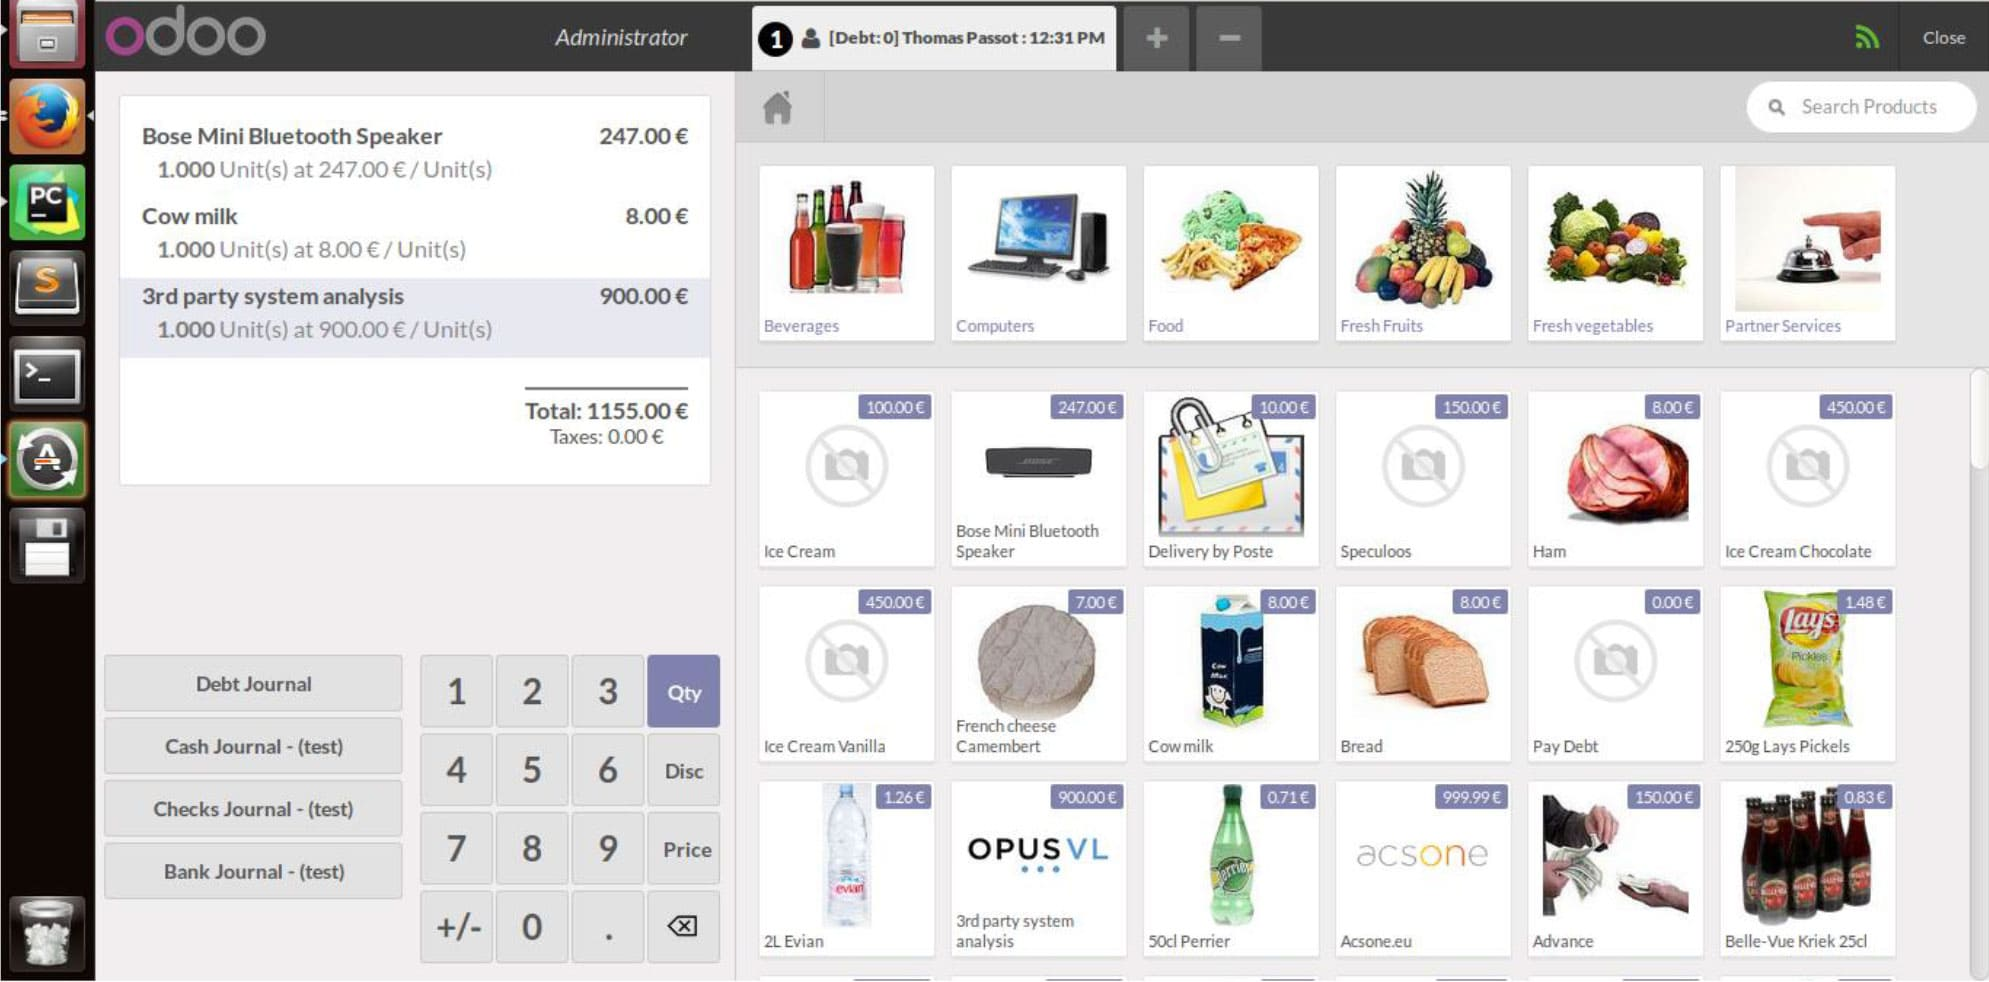 https/blog/Uploads/BlogImage/debt-notebook-13.jpg